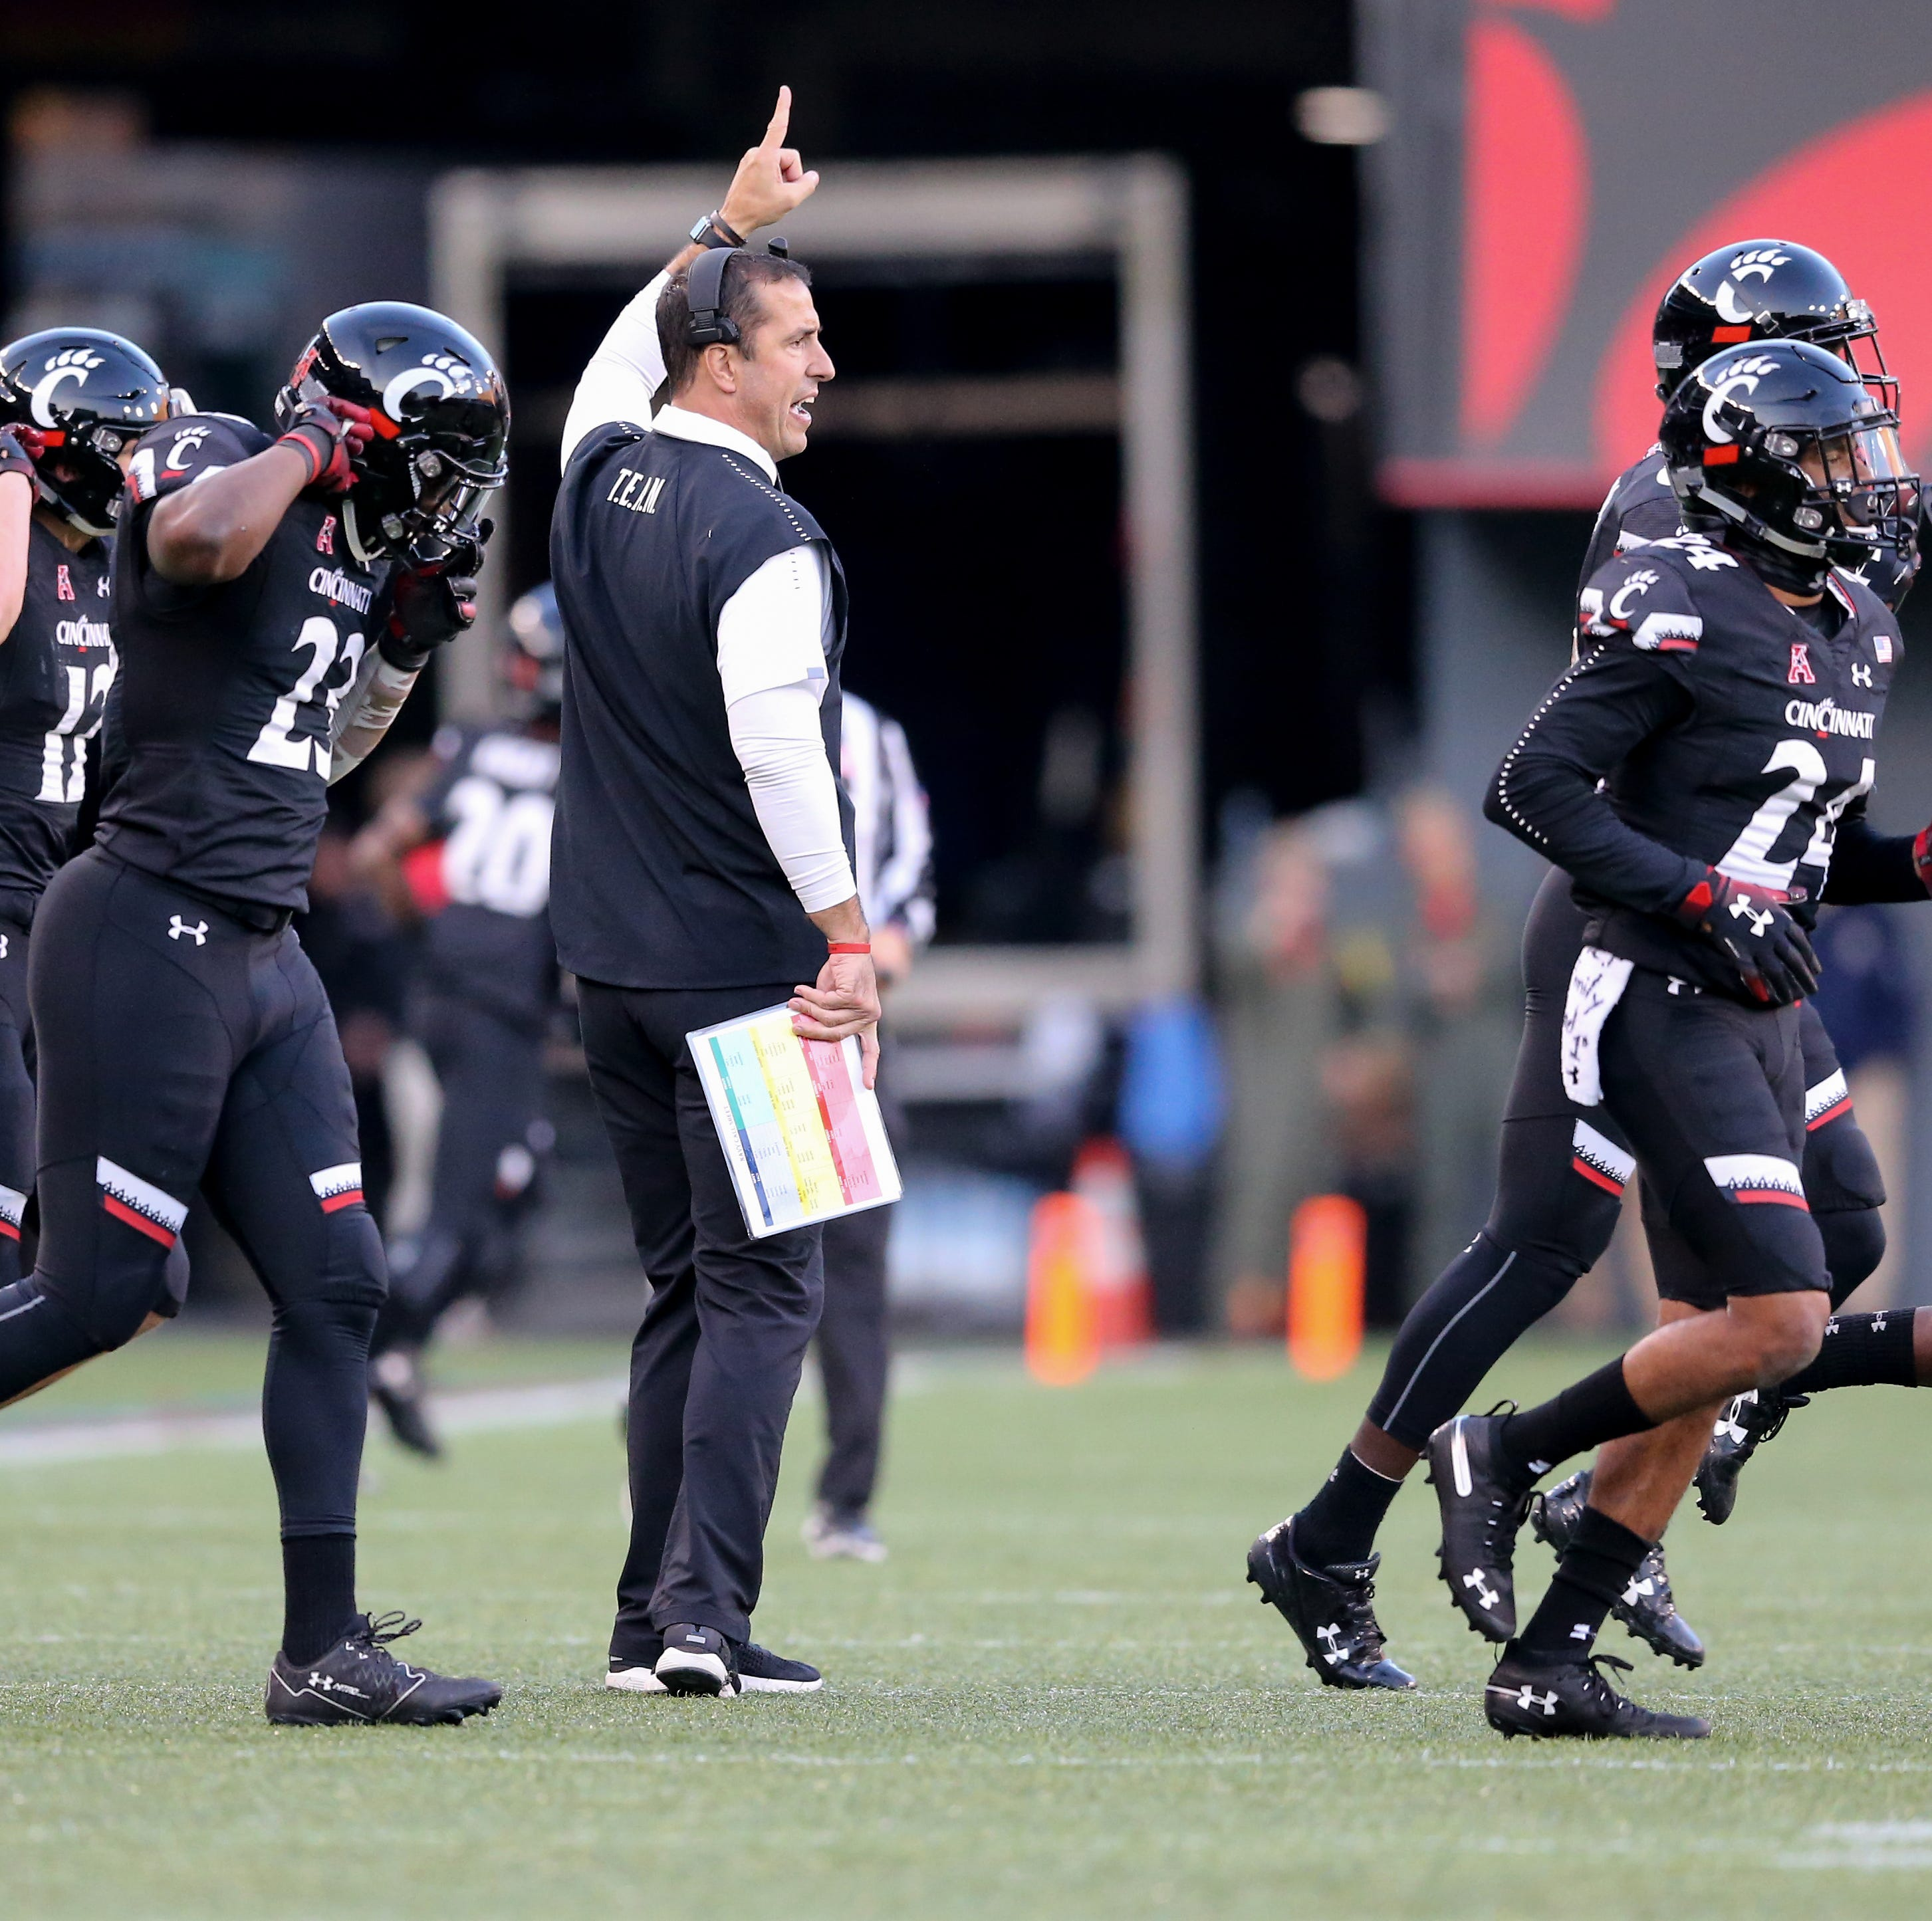 UC Bearcats football prepares for primetime showdown at Central Florida